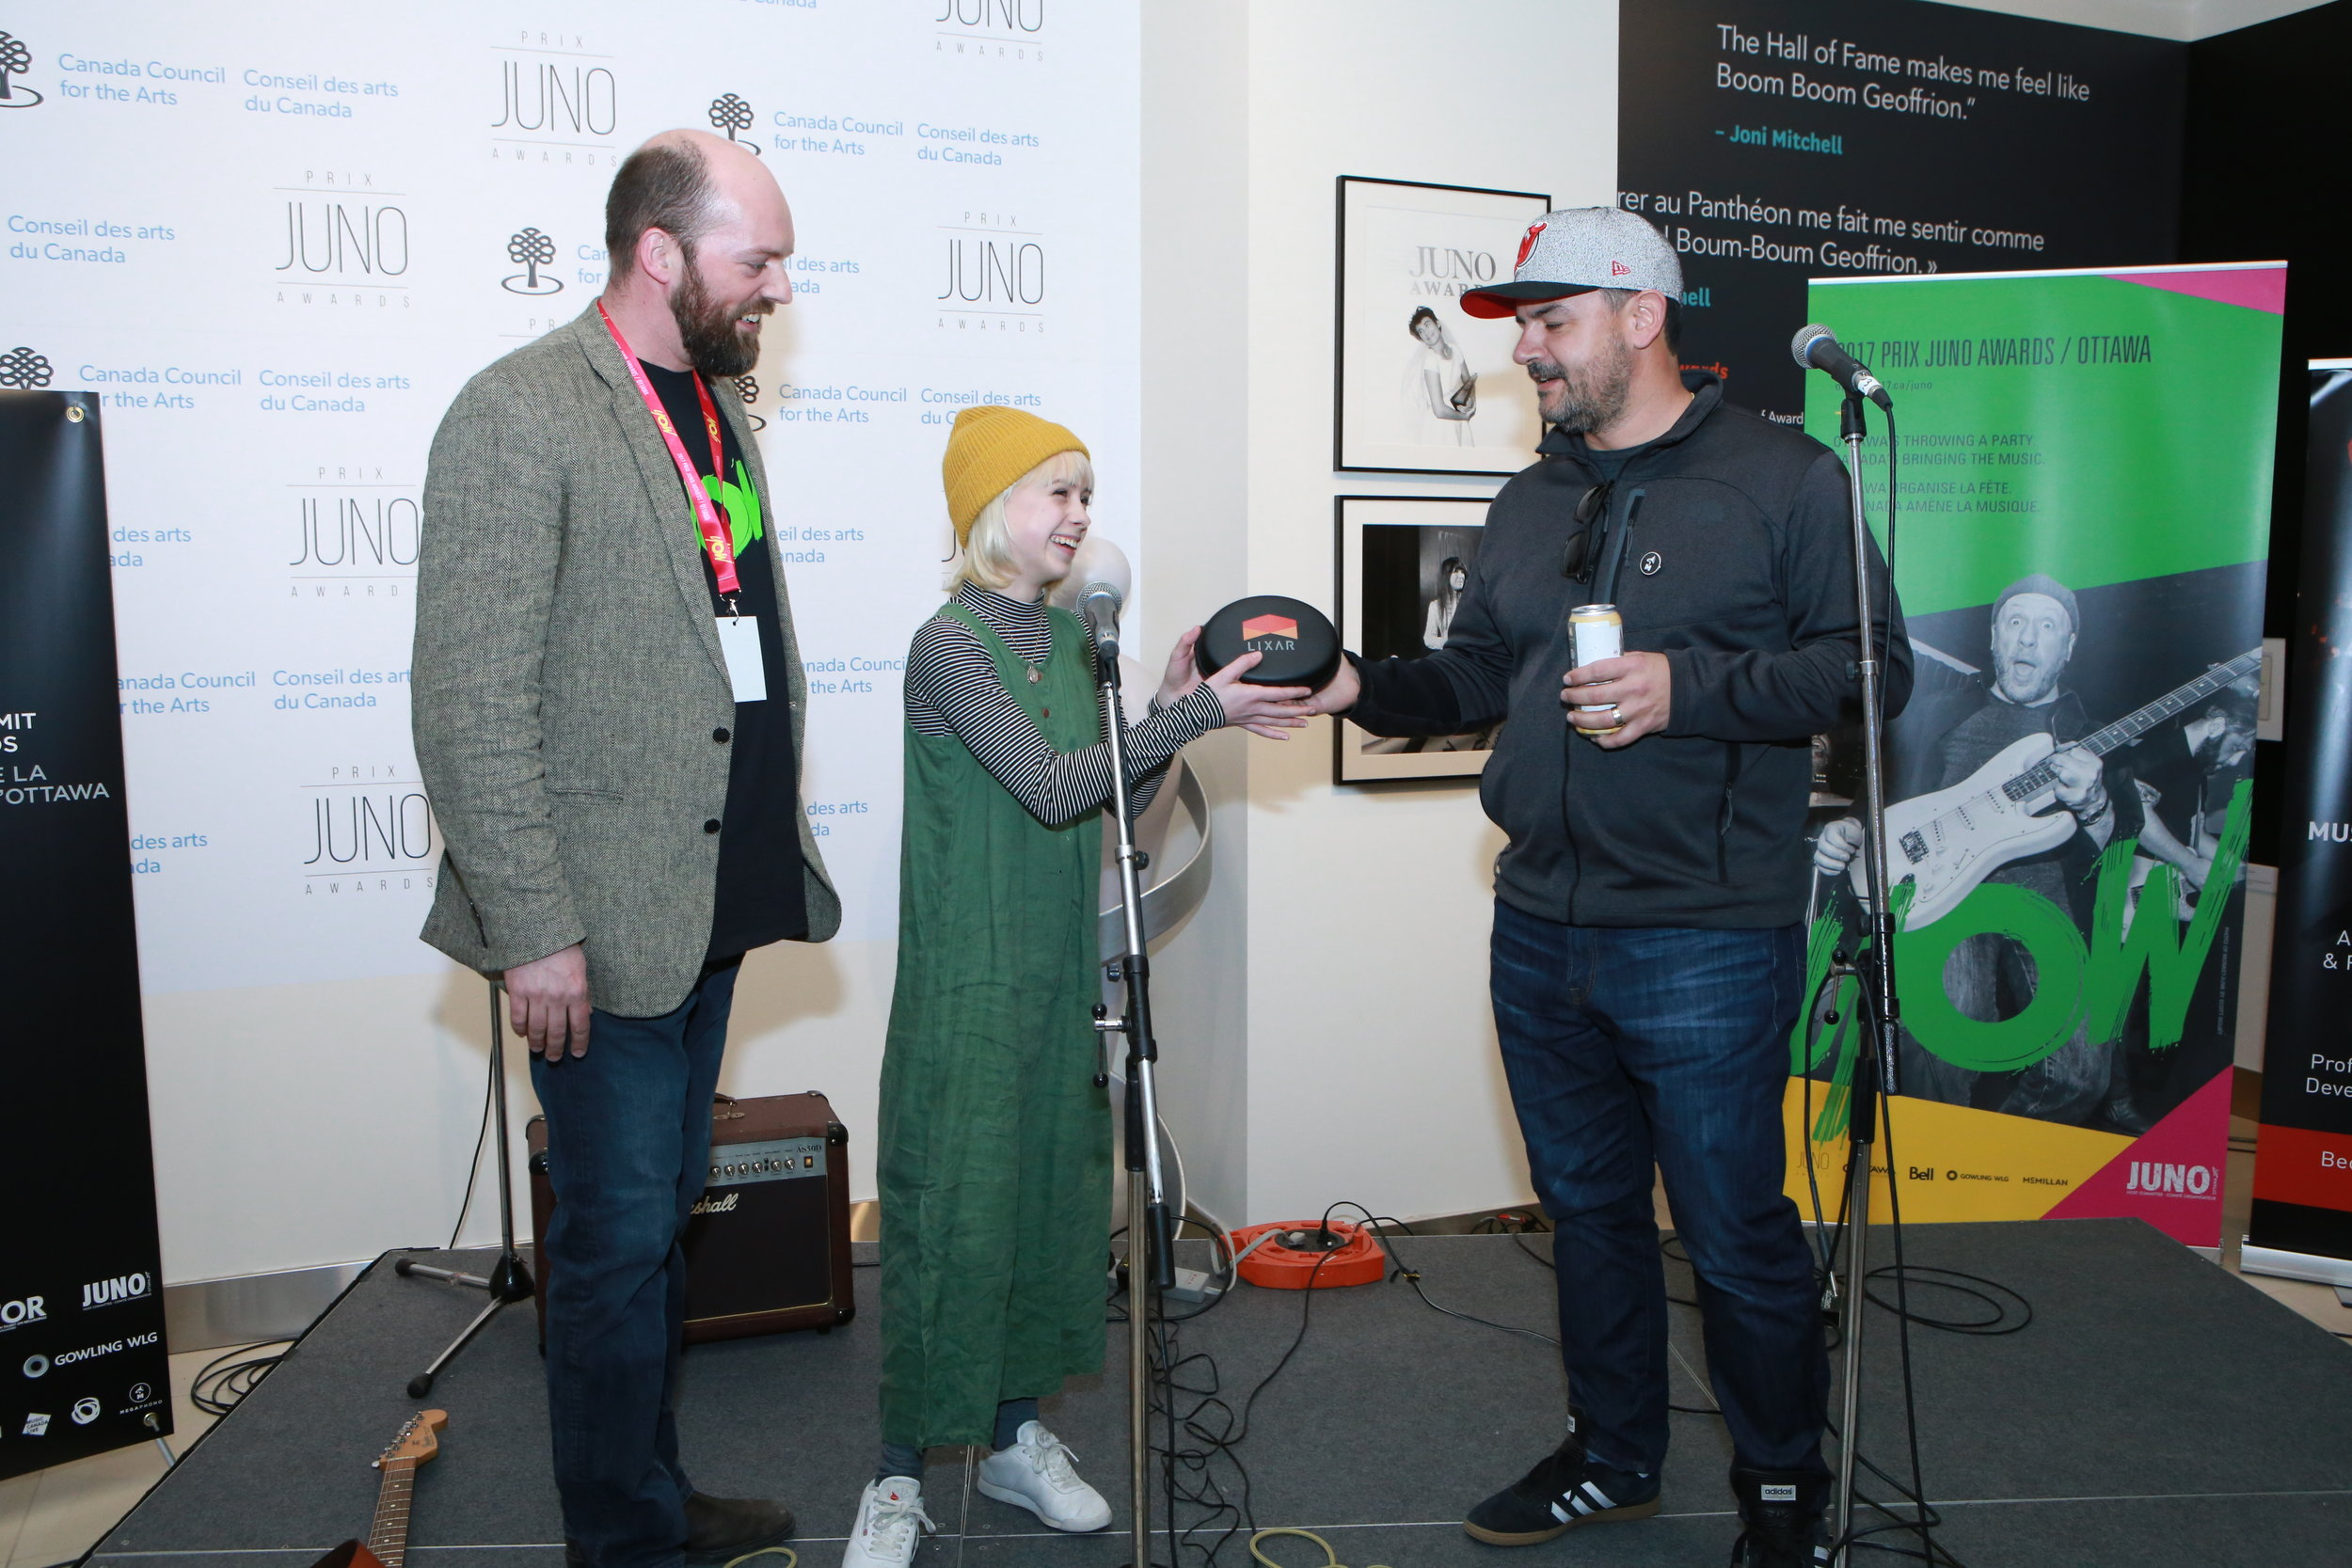 Allie O'Manique (Trails) presented with Lixar headphones by company CEO Bill Syrros and MEGAPHONO director Jon Bartlett at the Ottawa Music Summit at the Junos. (photo: John Major).